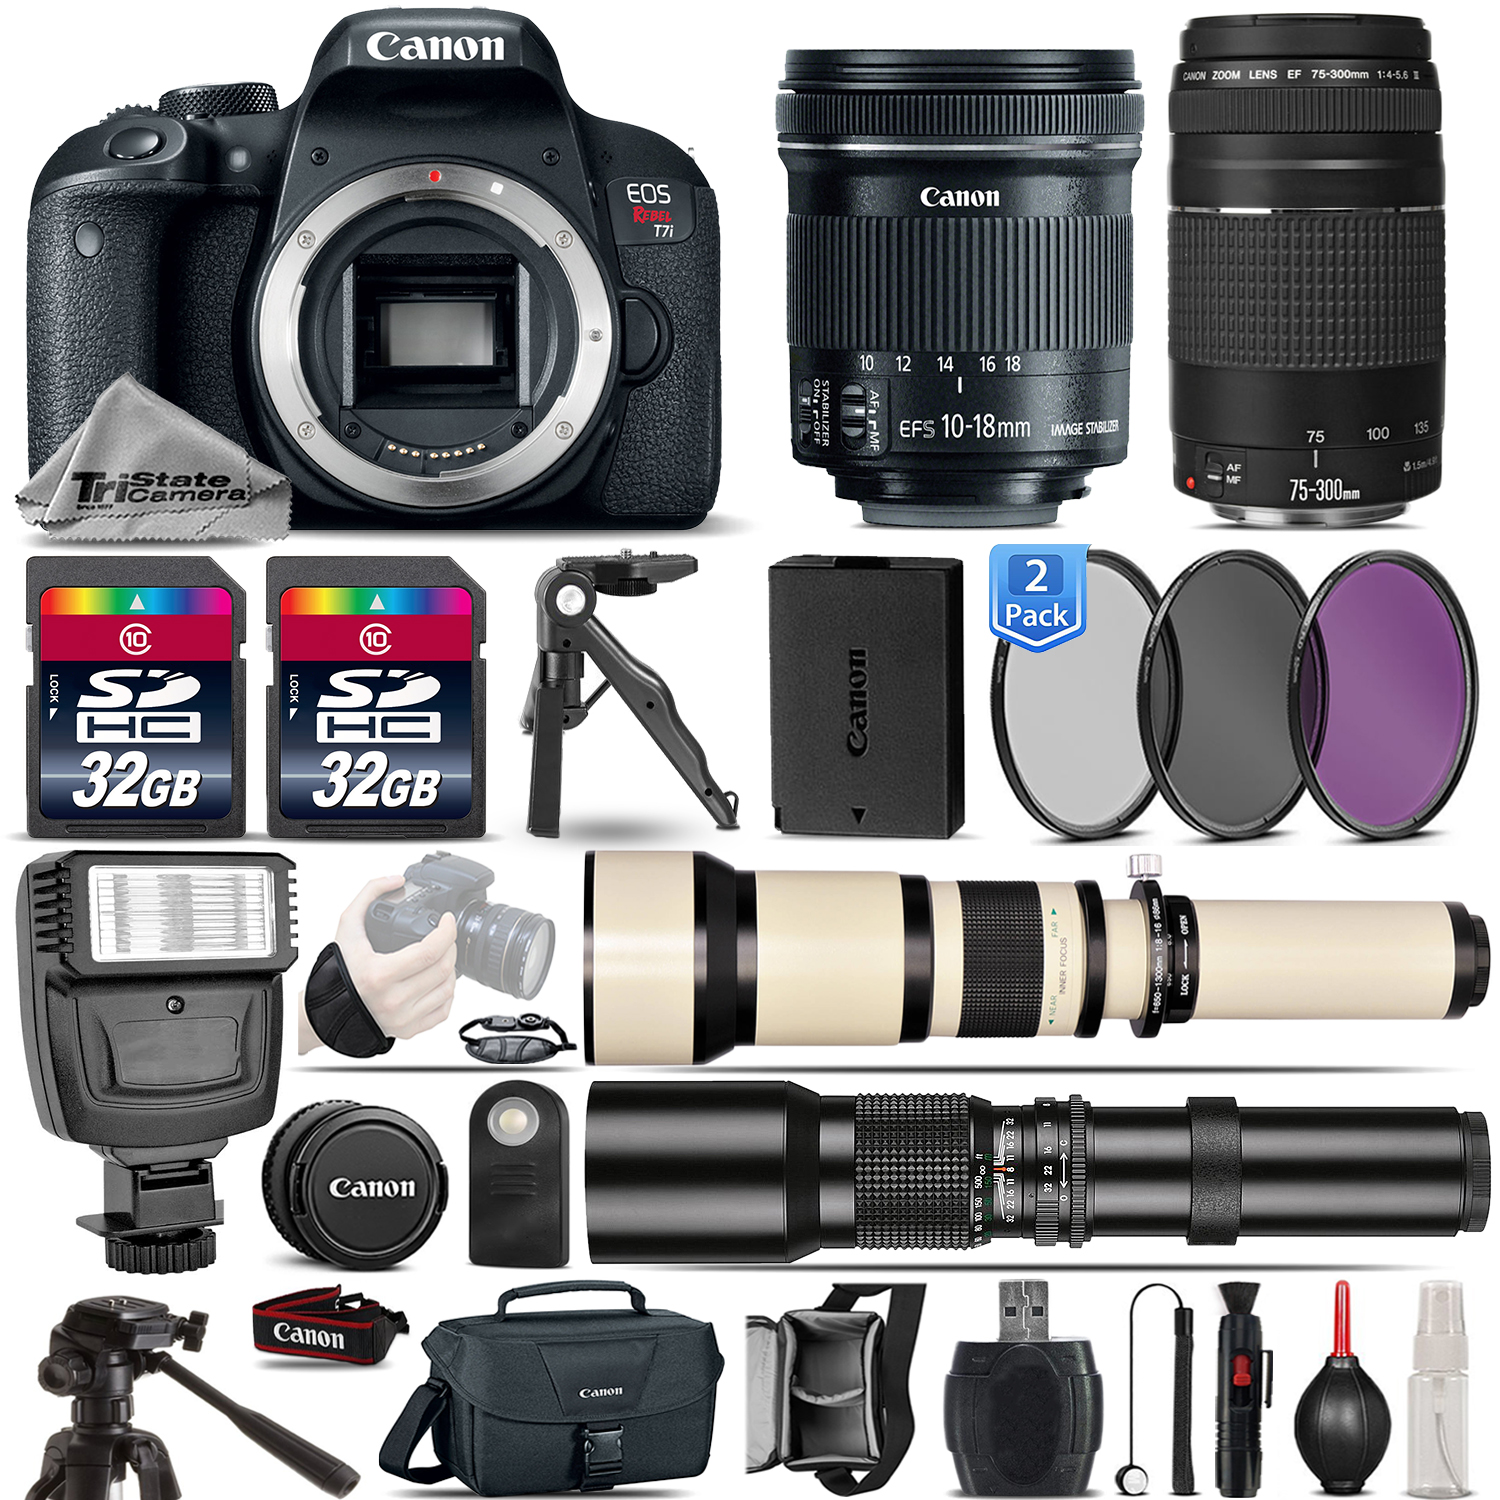 EOS Rebel T7i DSLR Camera + 10-18mm IS STM + 75-300mm Lens - 64GB Bundle *FREE SHIPPING*